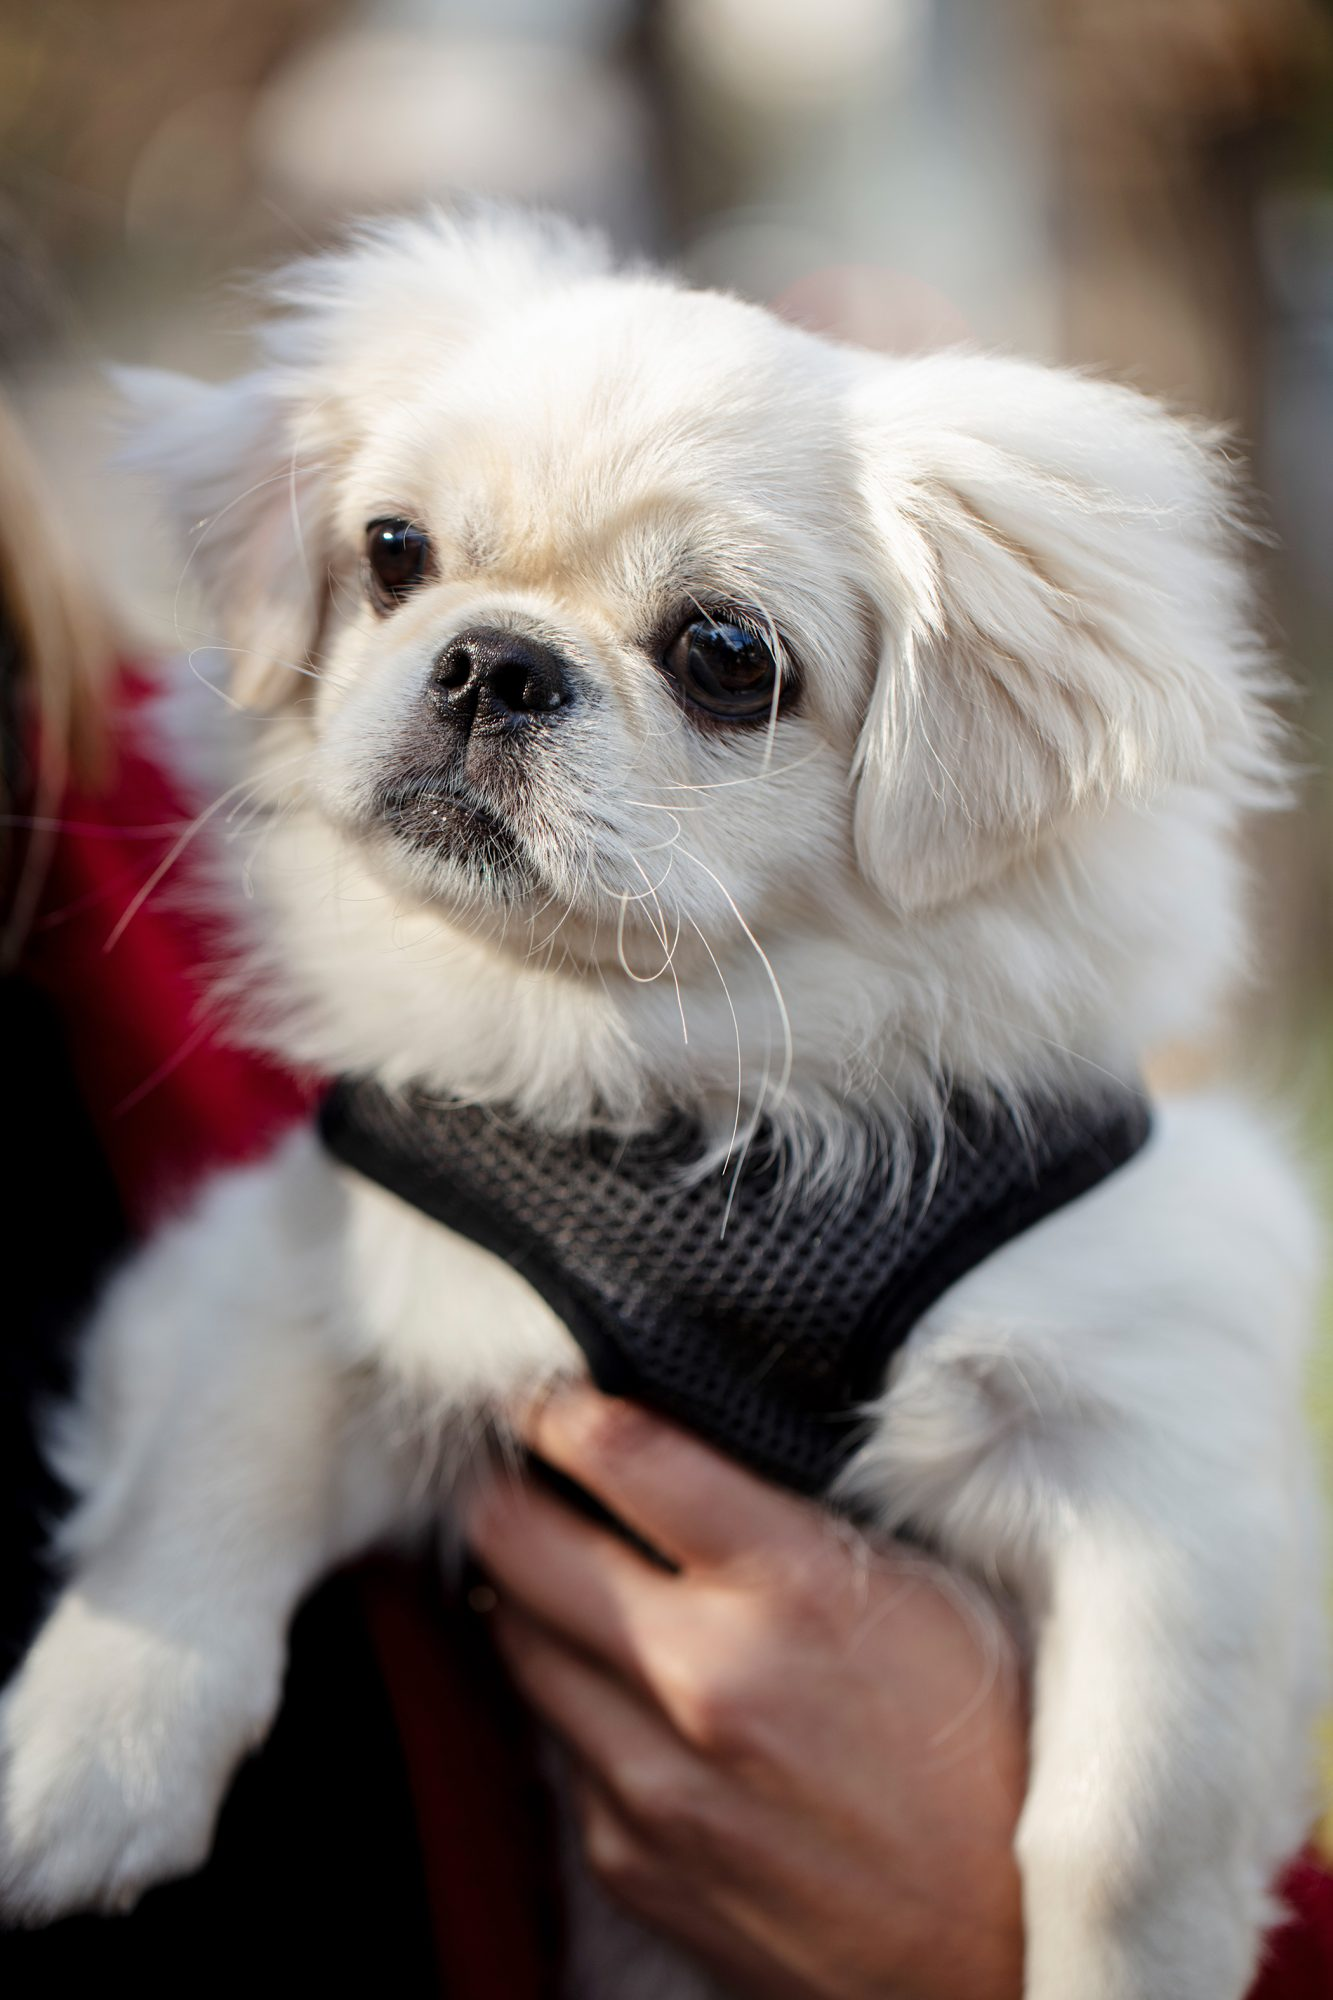 closeup of a white Pekingese in his owners arm wearing a black harness